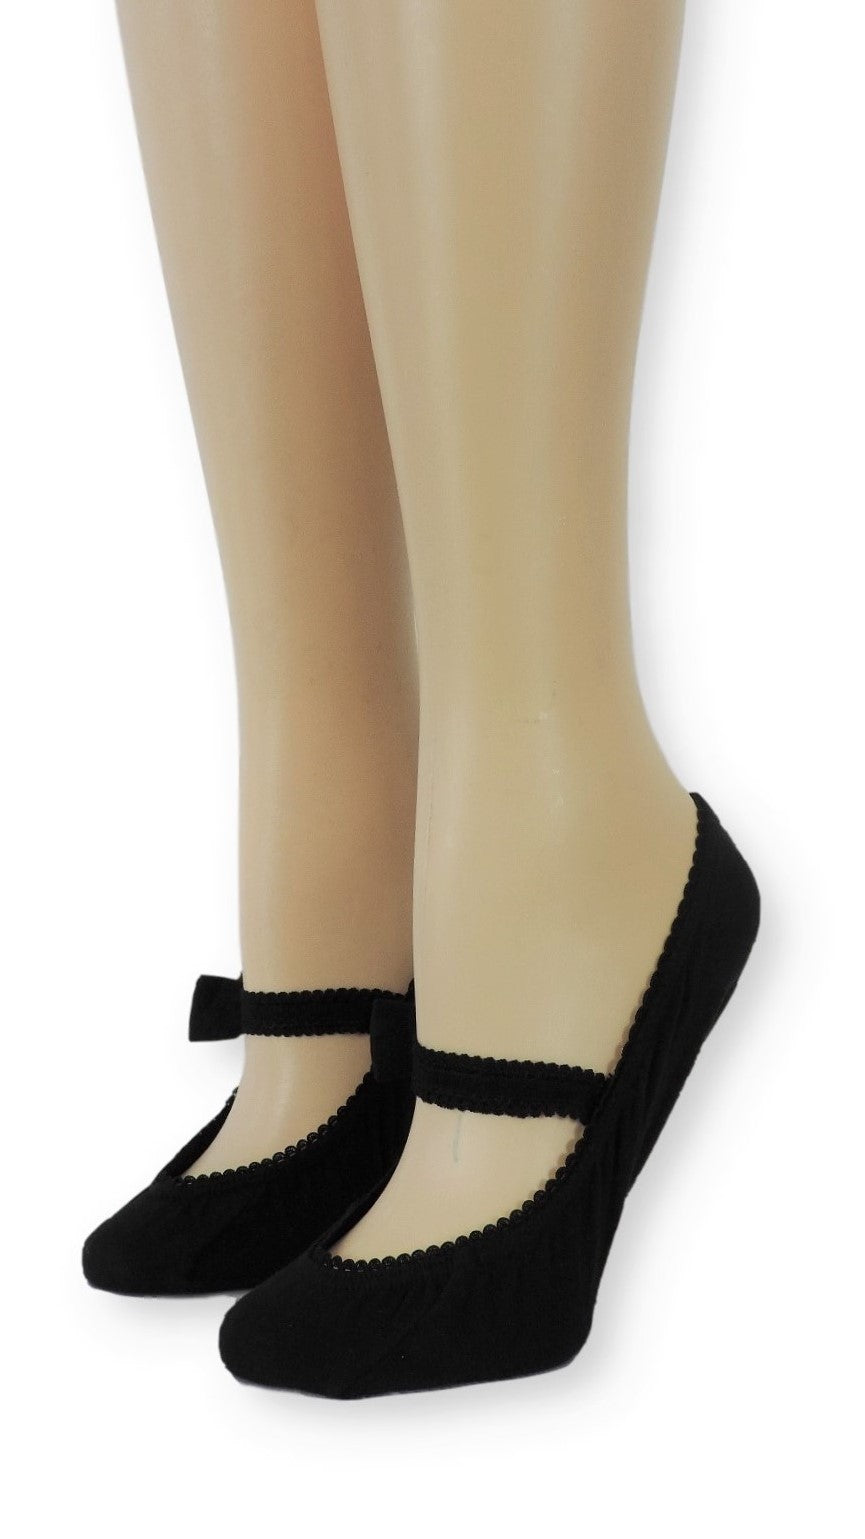 Darknight Ankle Socks with Bow Strap